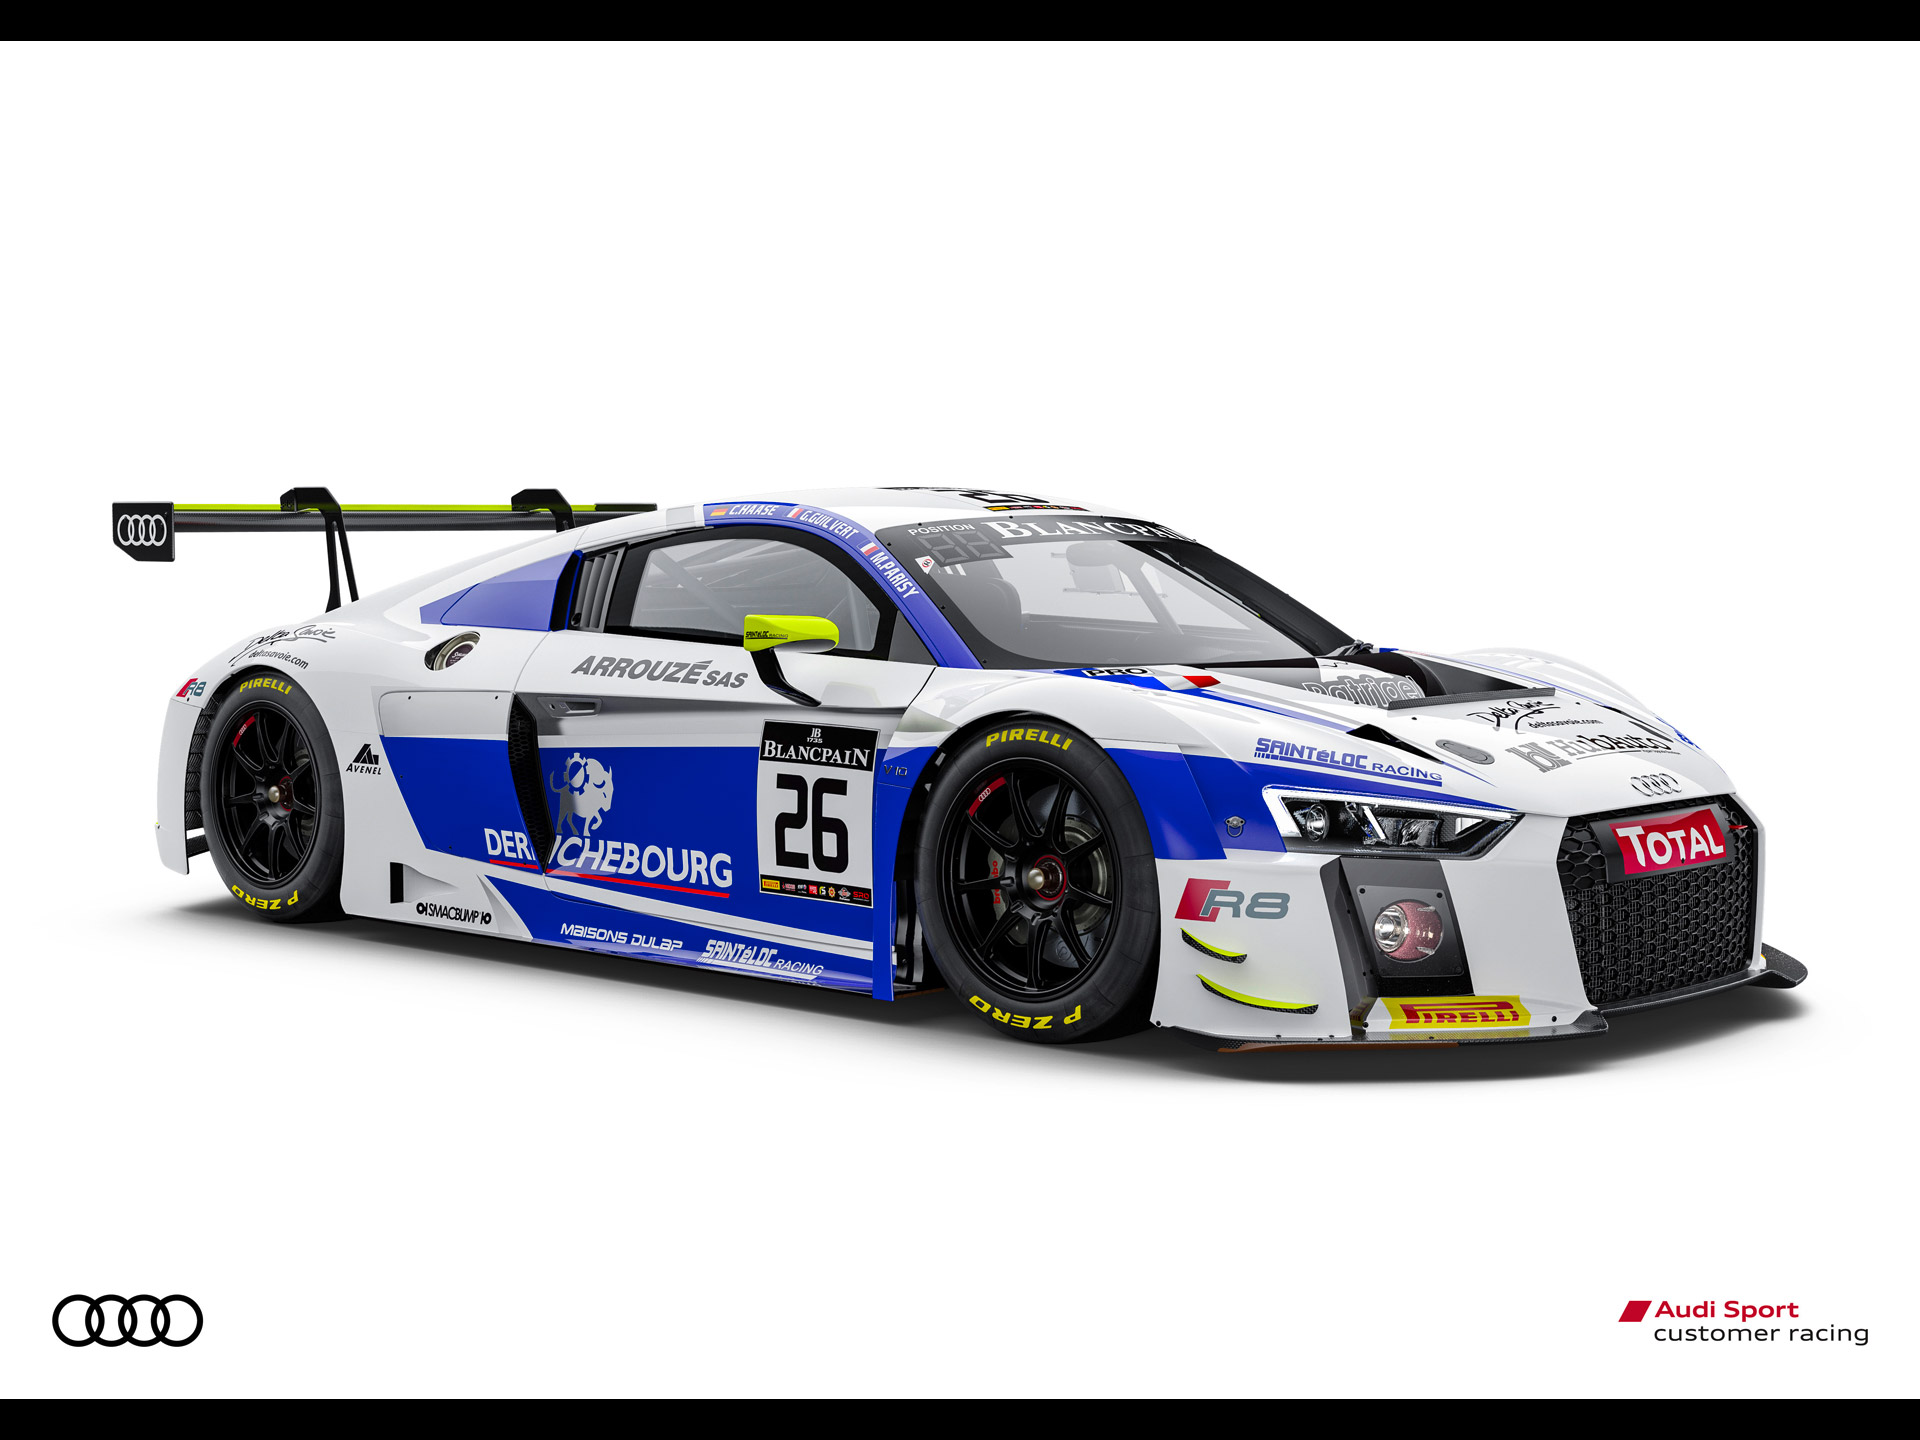 Belgian Audi Club 24 Hours of Spa 2015 Audi R8 LMS Ultra 1:43 Spark SB 112